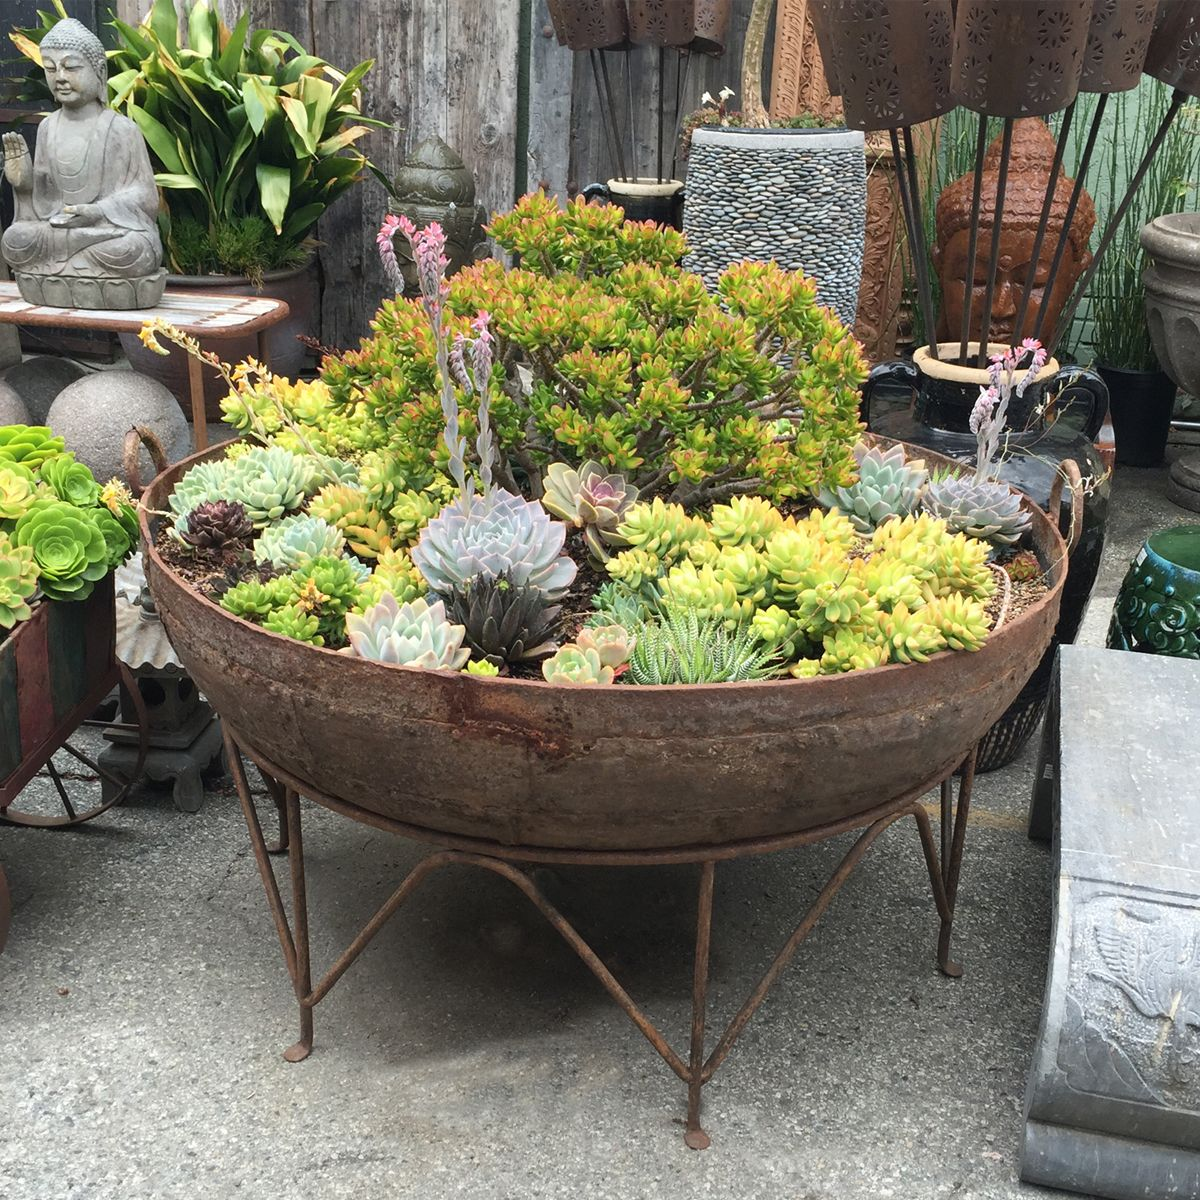 Large Solid Iron Kadai Bowl Planted With Succulent Arrangements Iron Stand Included Origin Succulent Garden Design Succulent Garden Diy Succulent Landscaping